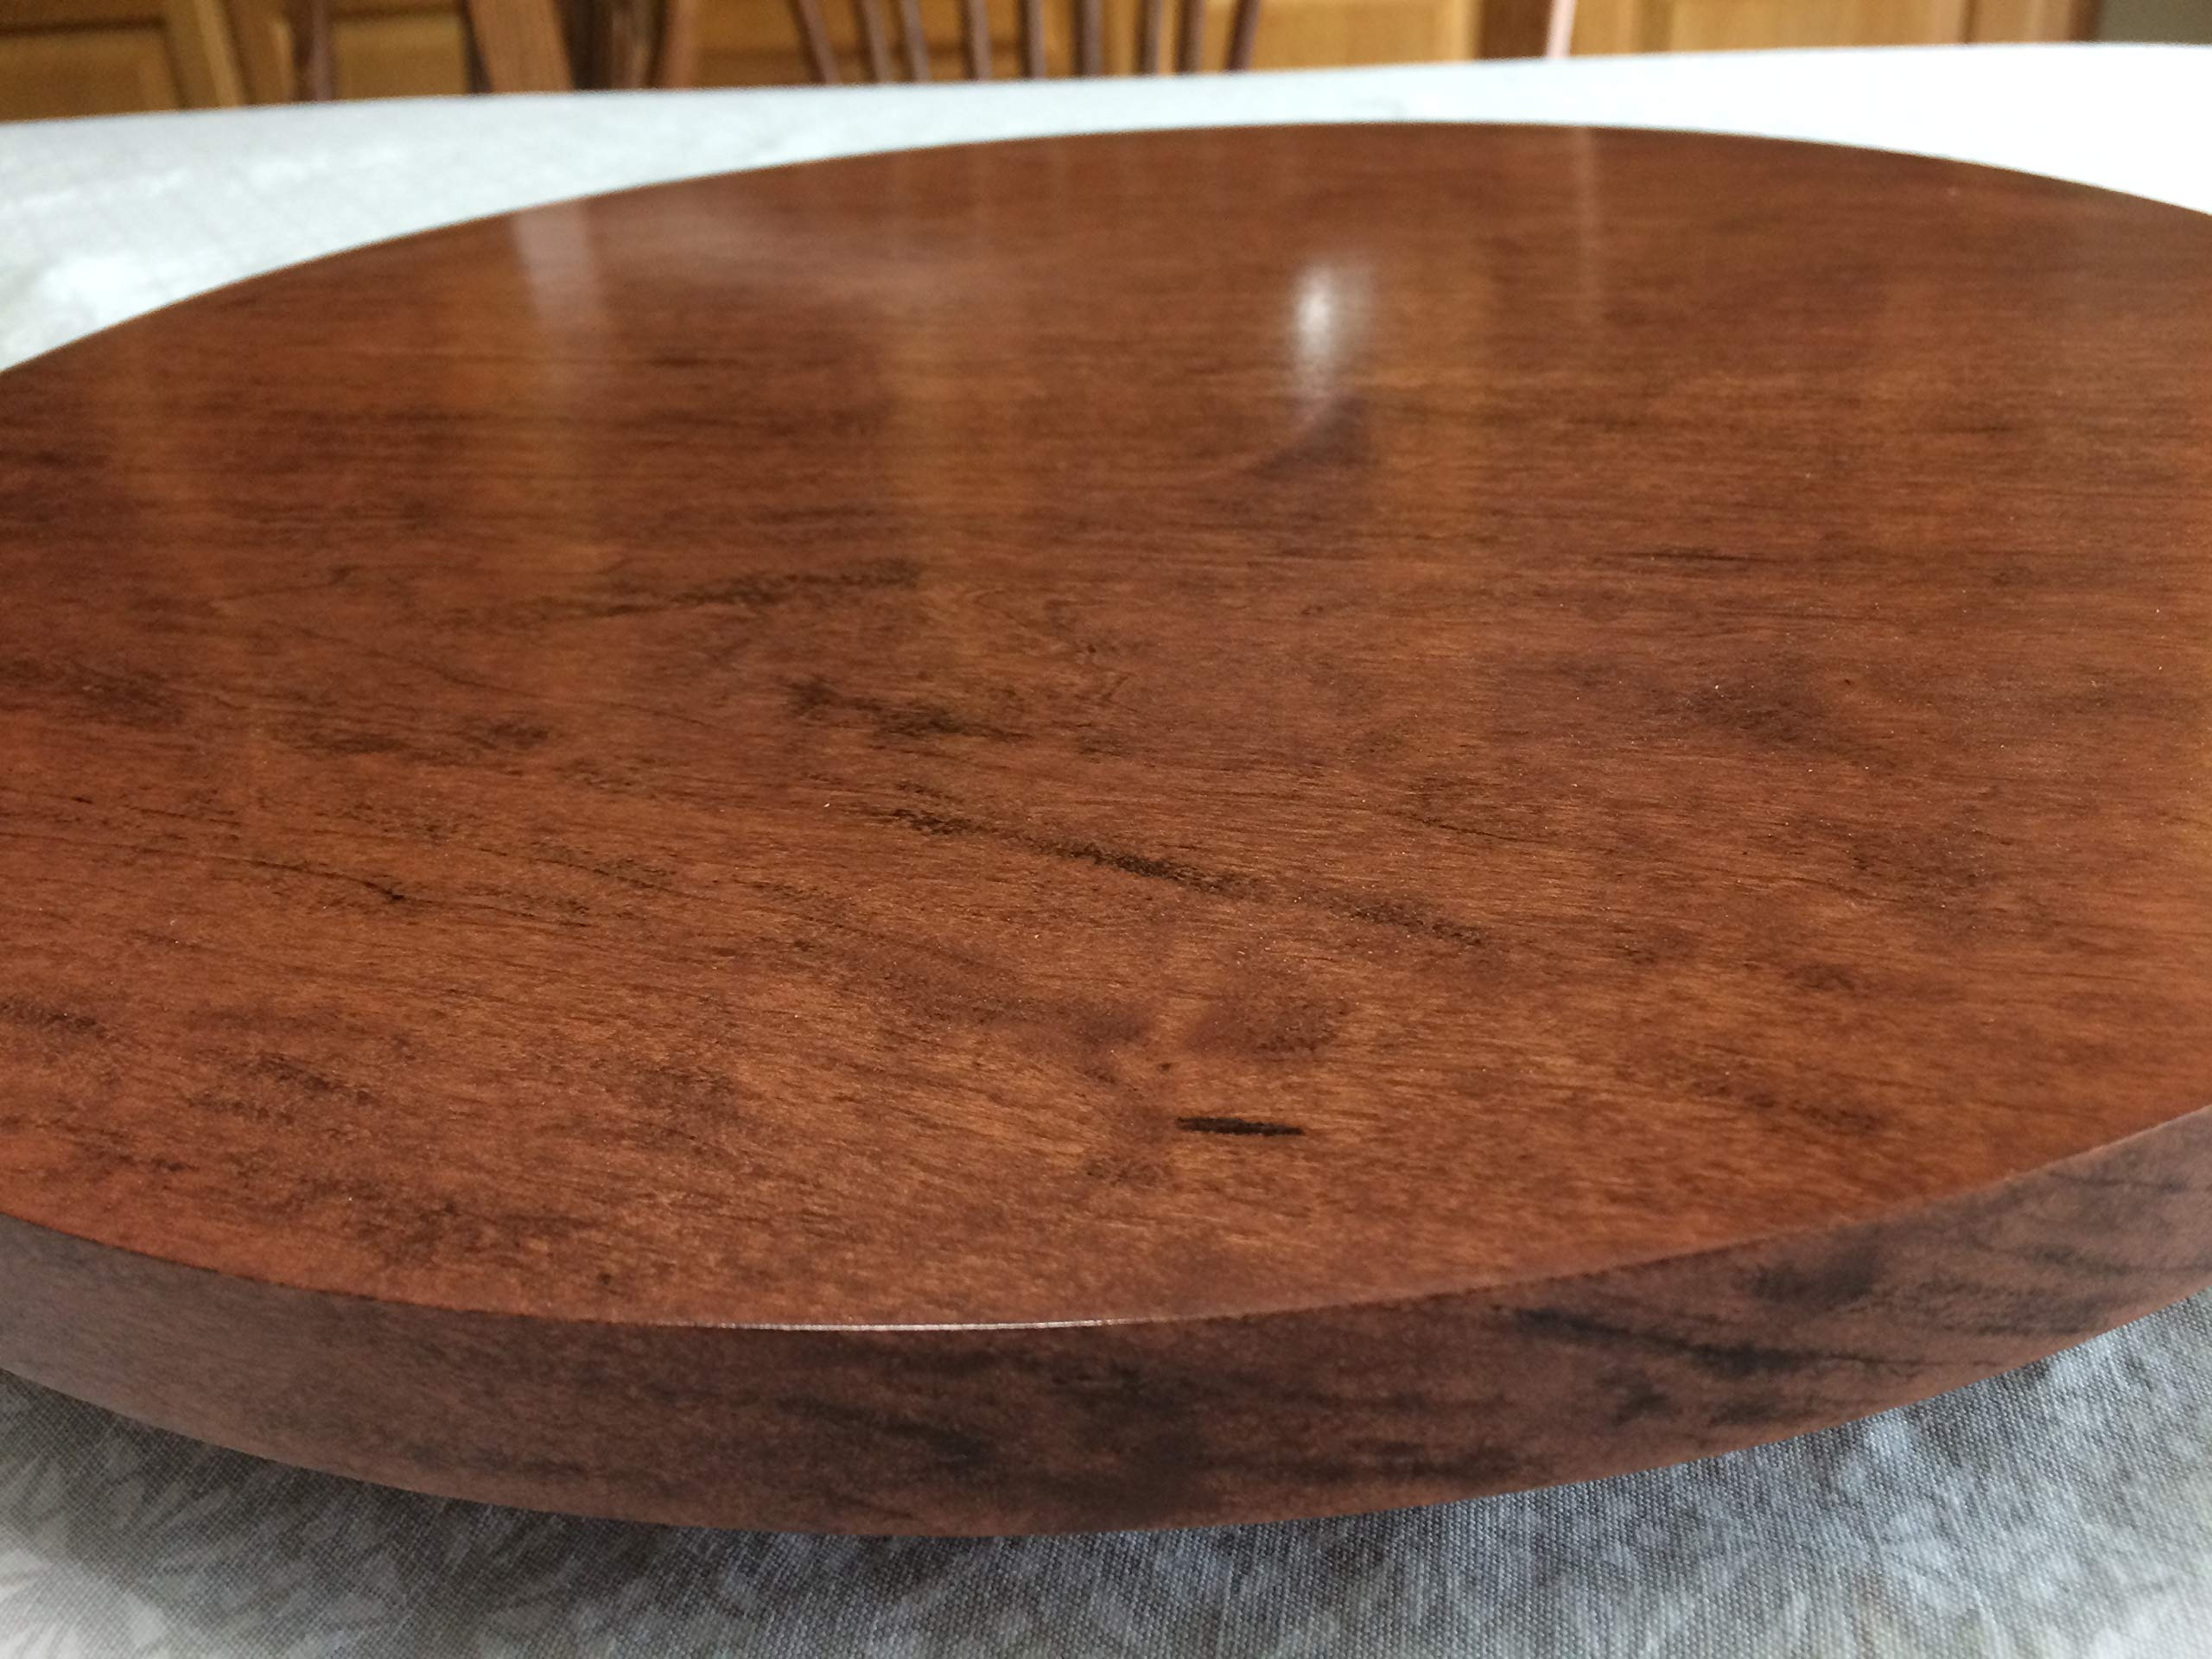 Cherry wood lazy susan, 15 3/4'' Diameter, handcrafted